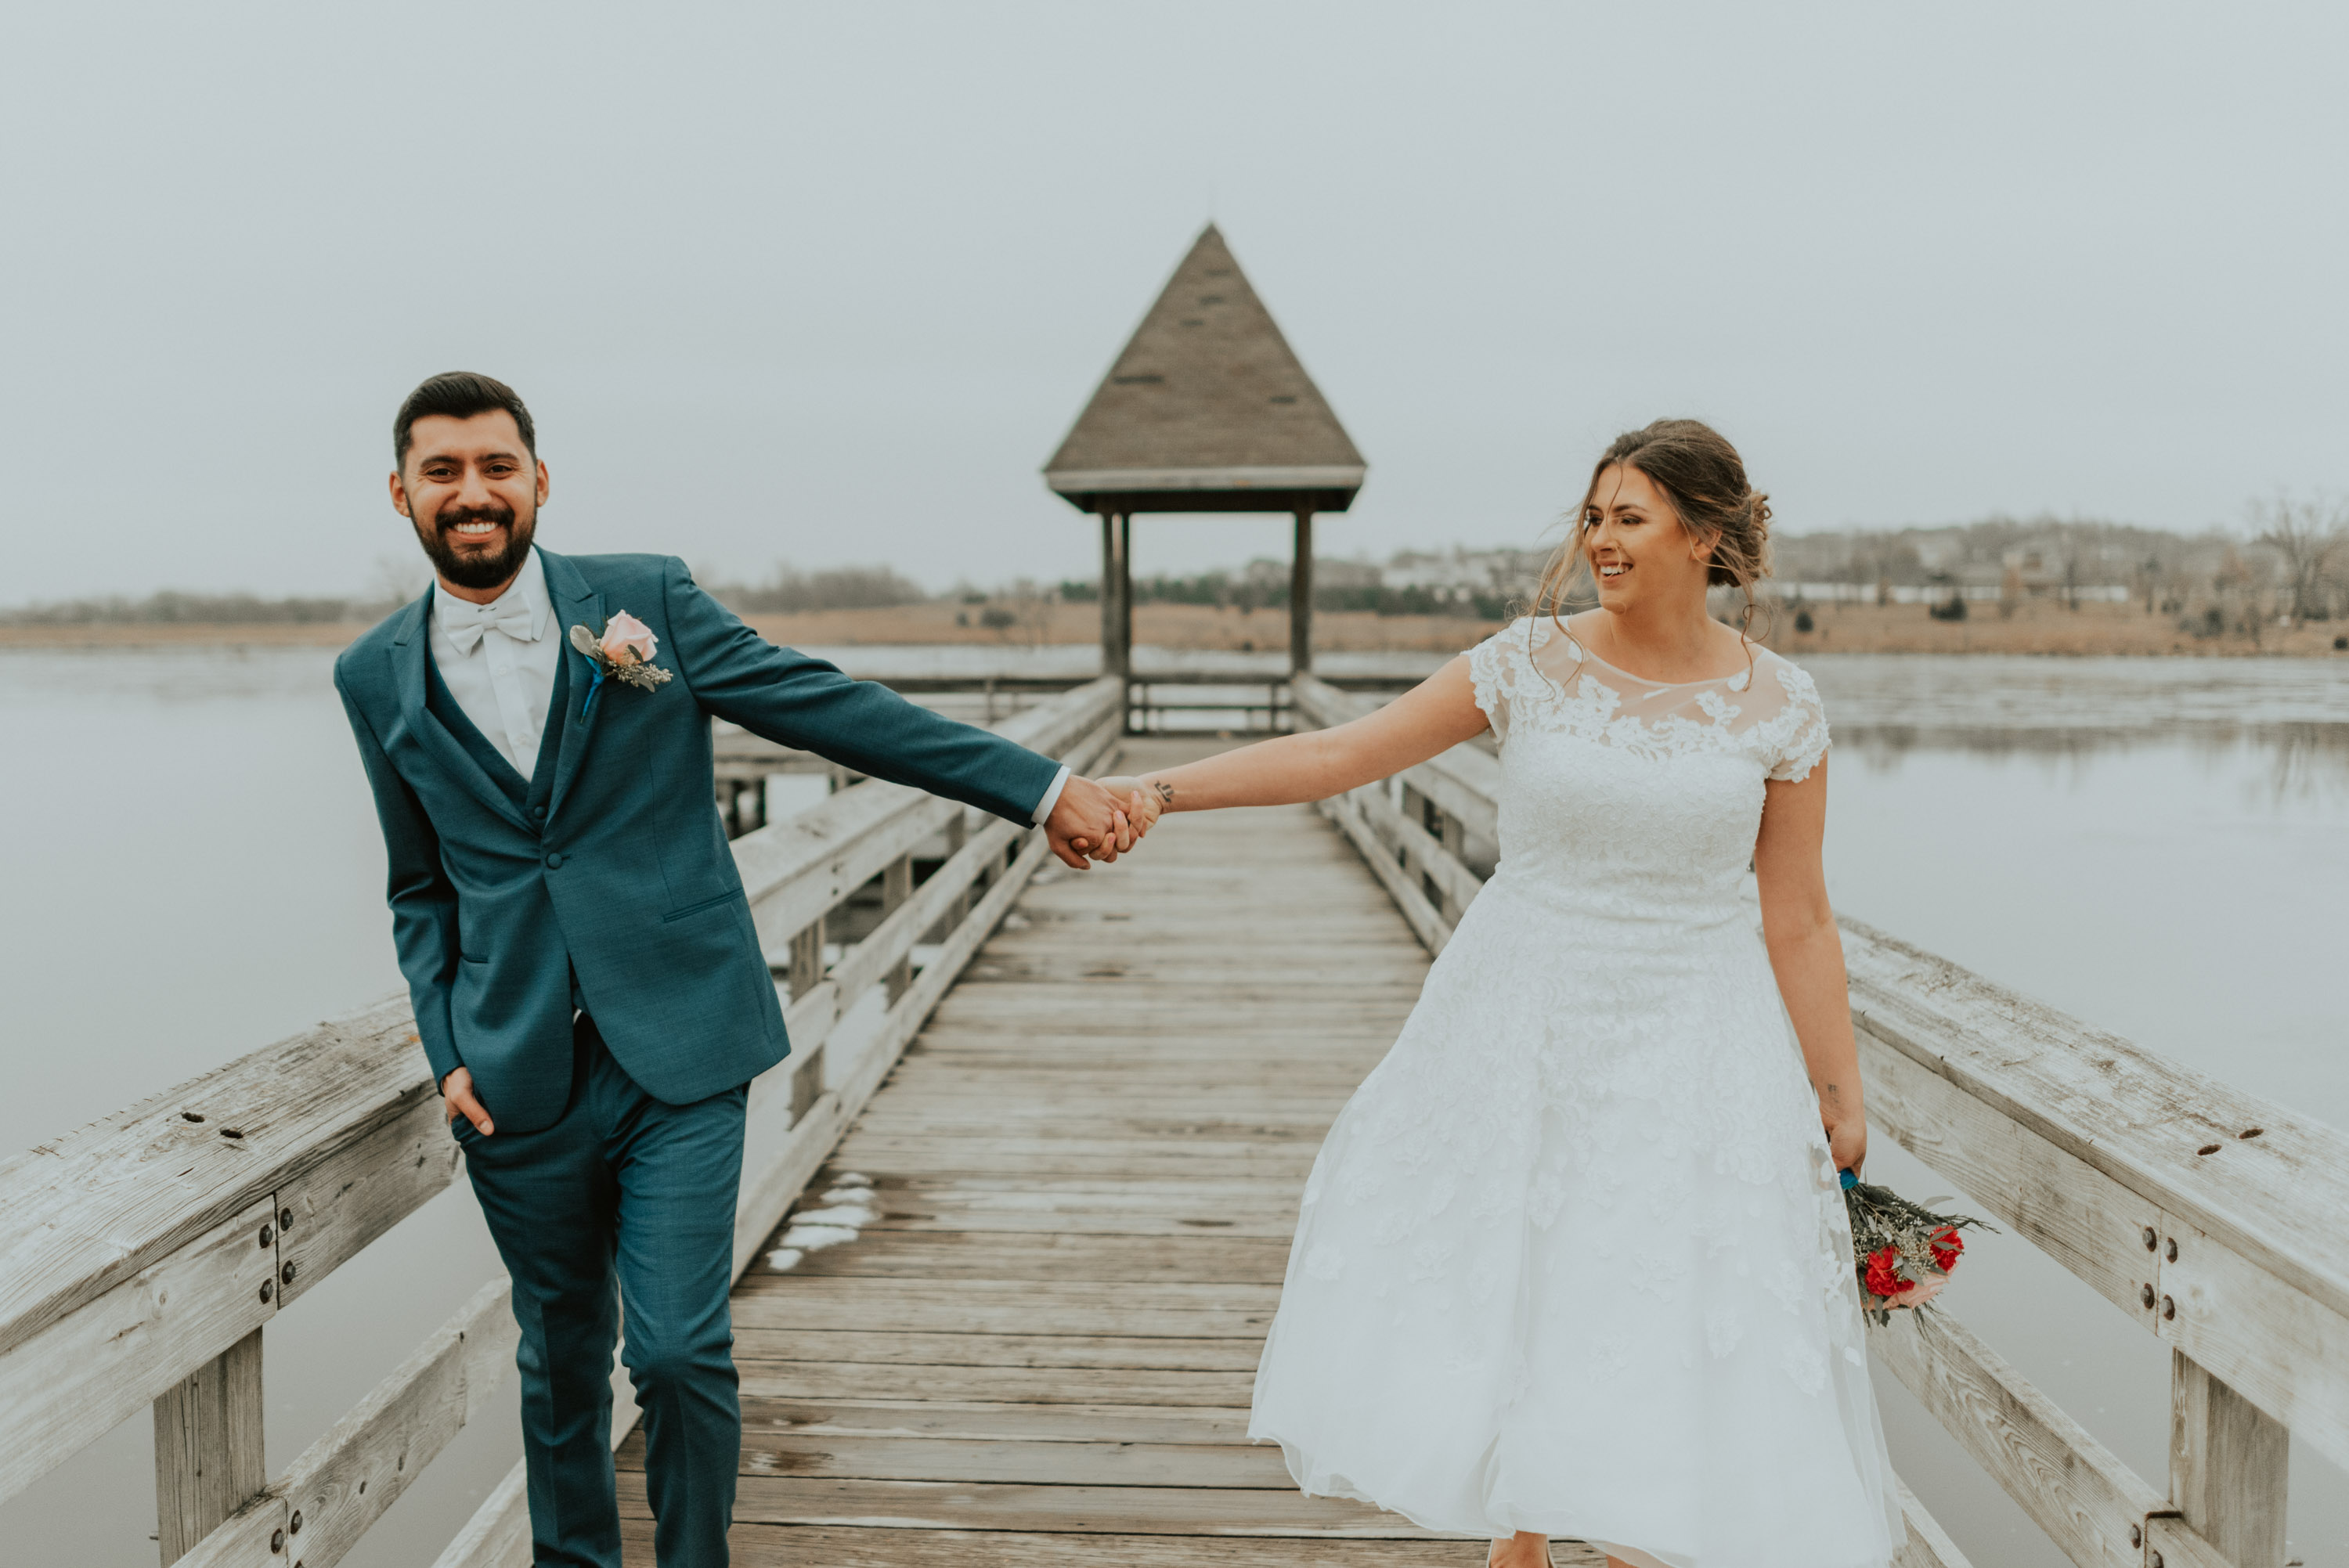 emily gabriel papillion nebraska elopement lakeside wedding photography